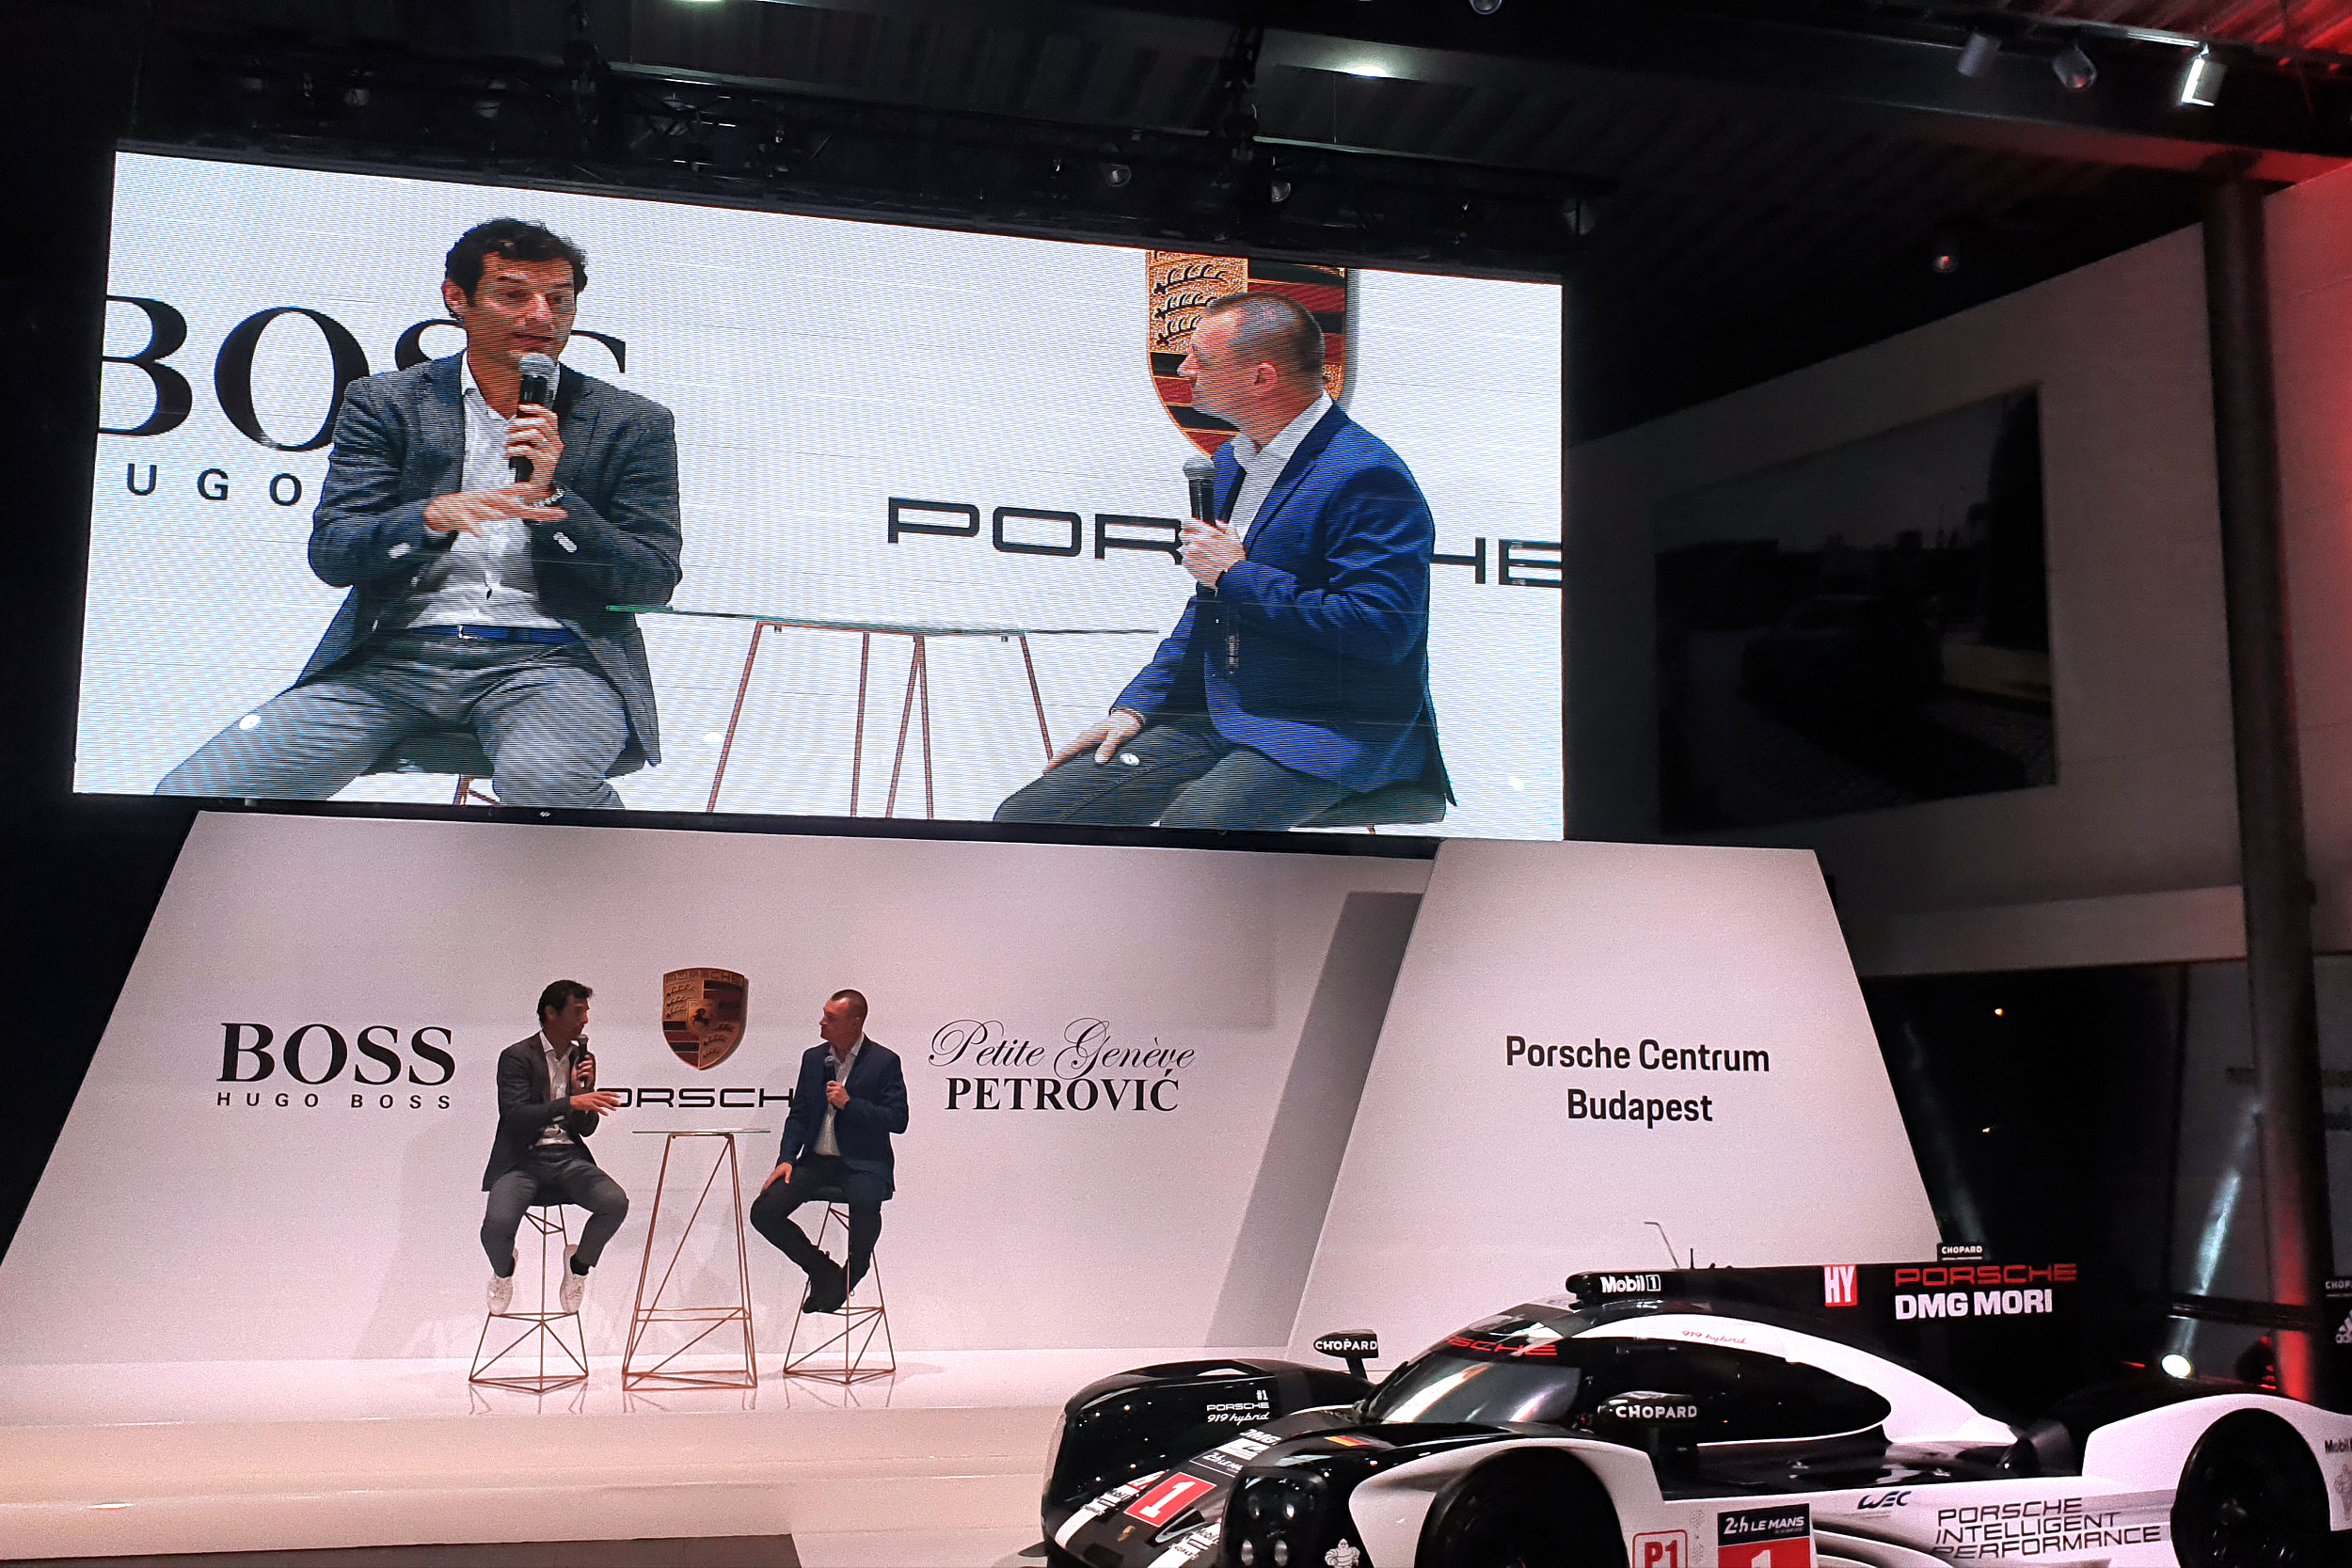 Mark Webber at Porsche Centrum Budapest